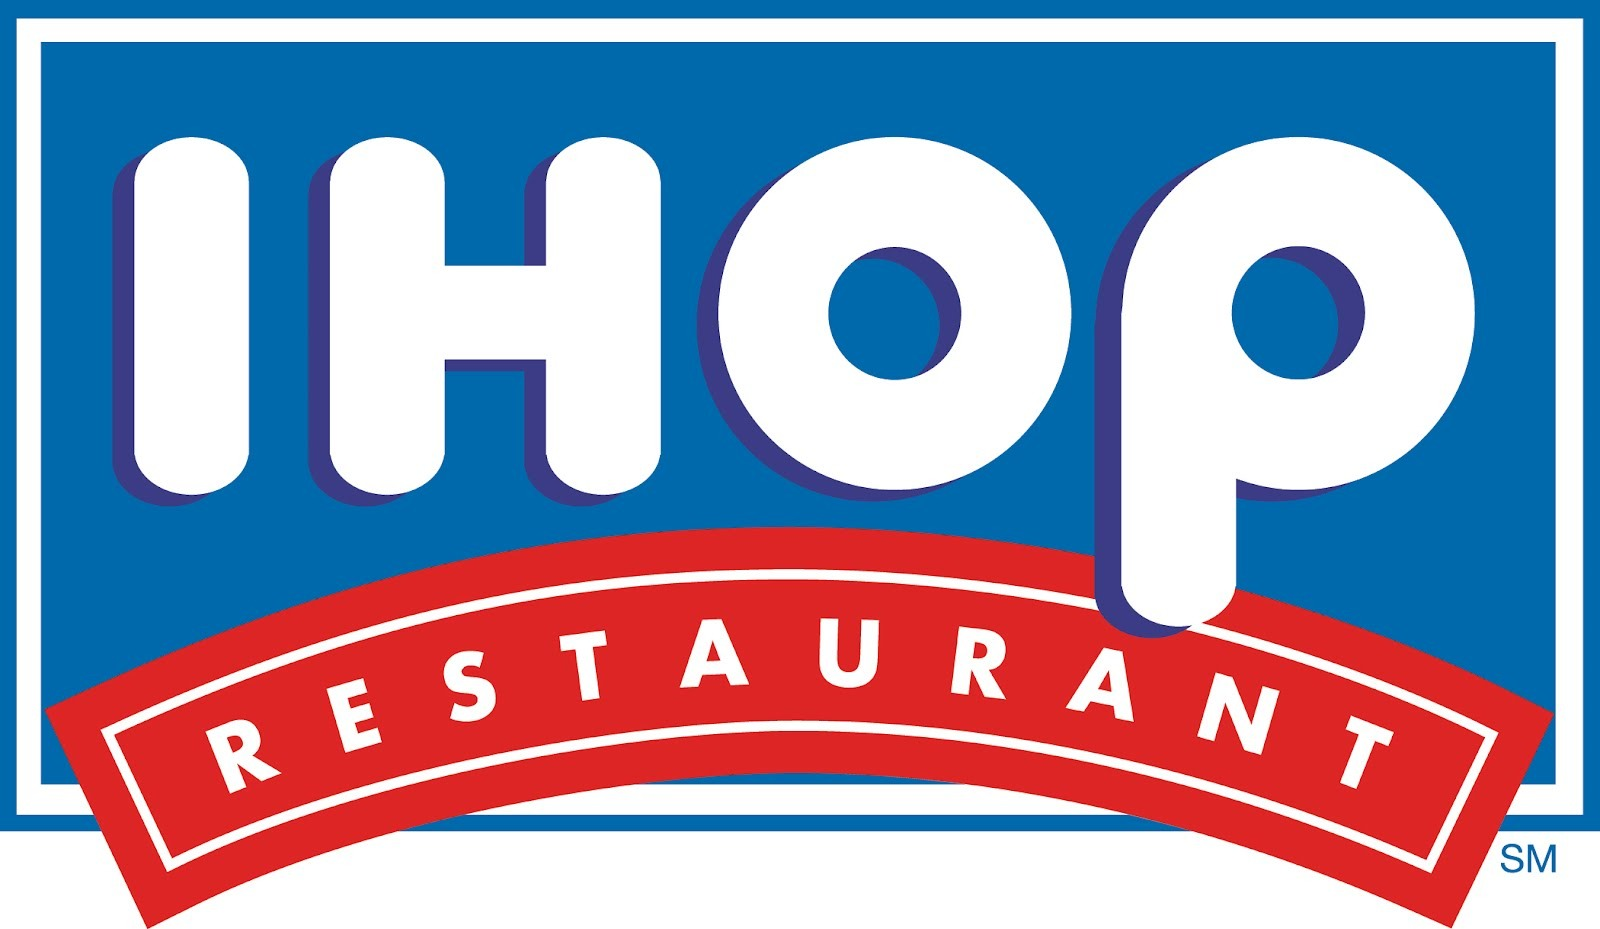 Join IHOP revolution! And get a free breakfast for just signing up!!! Also you get promotions throughout the year.